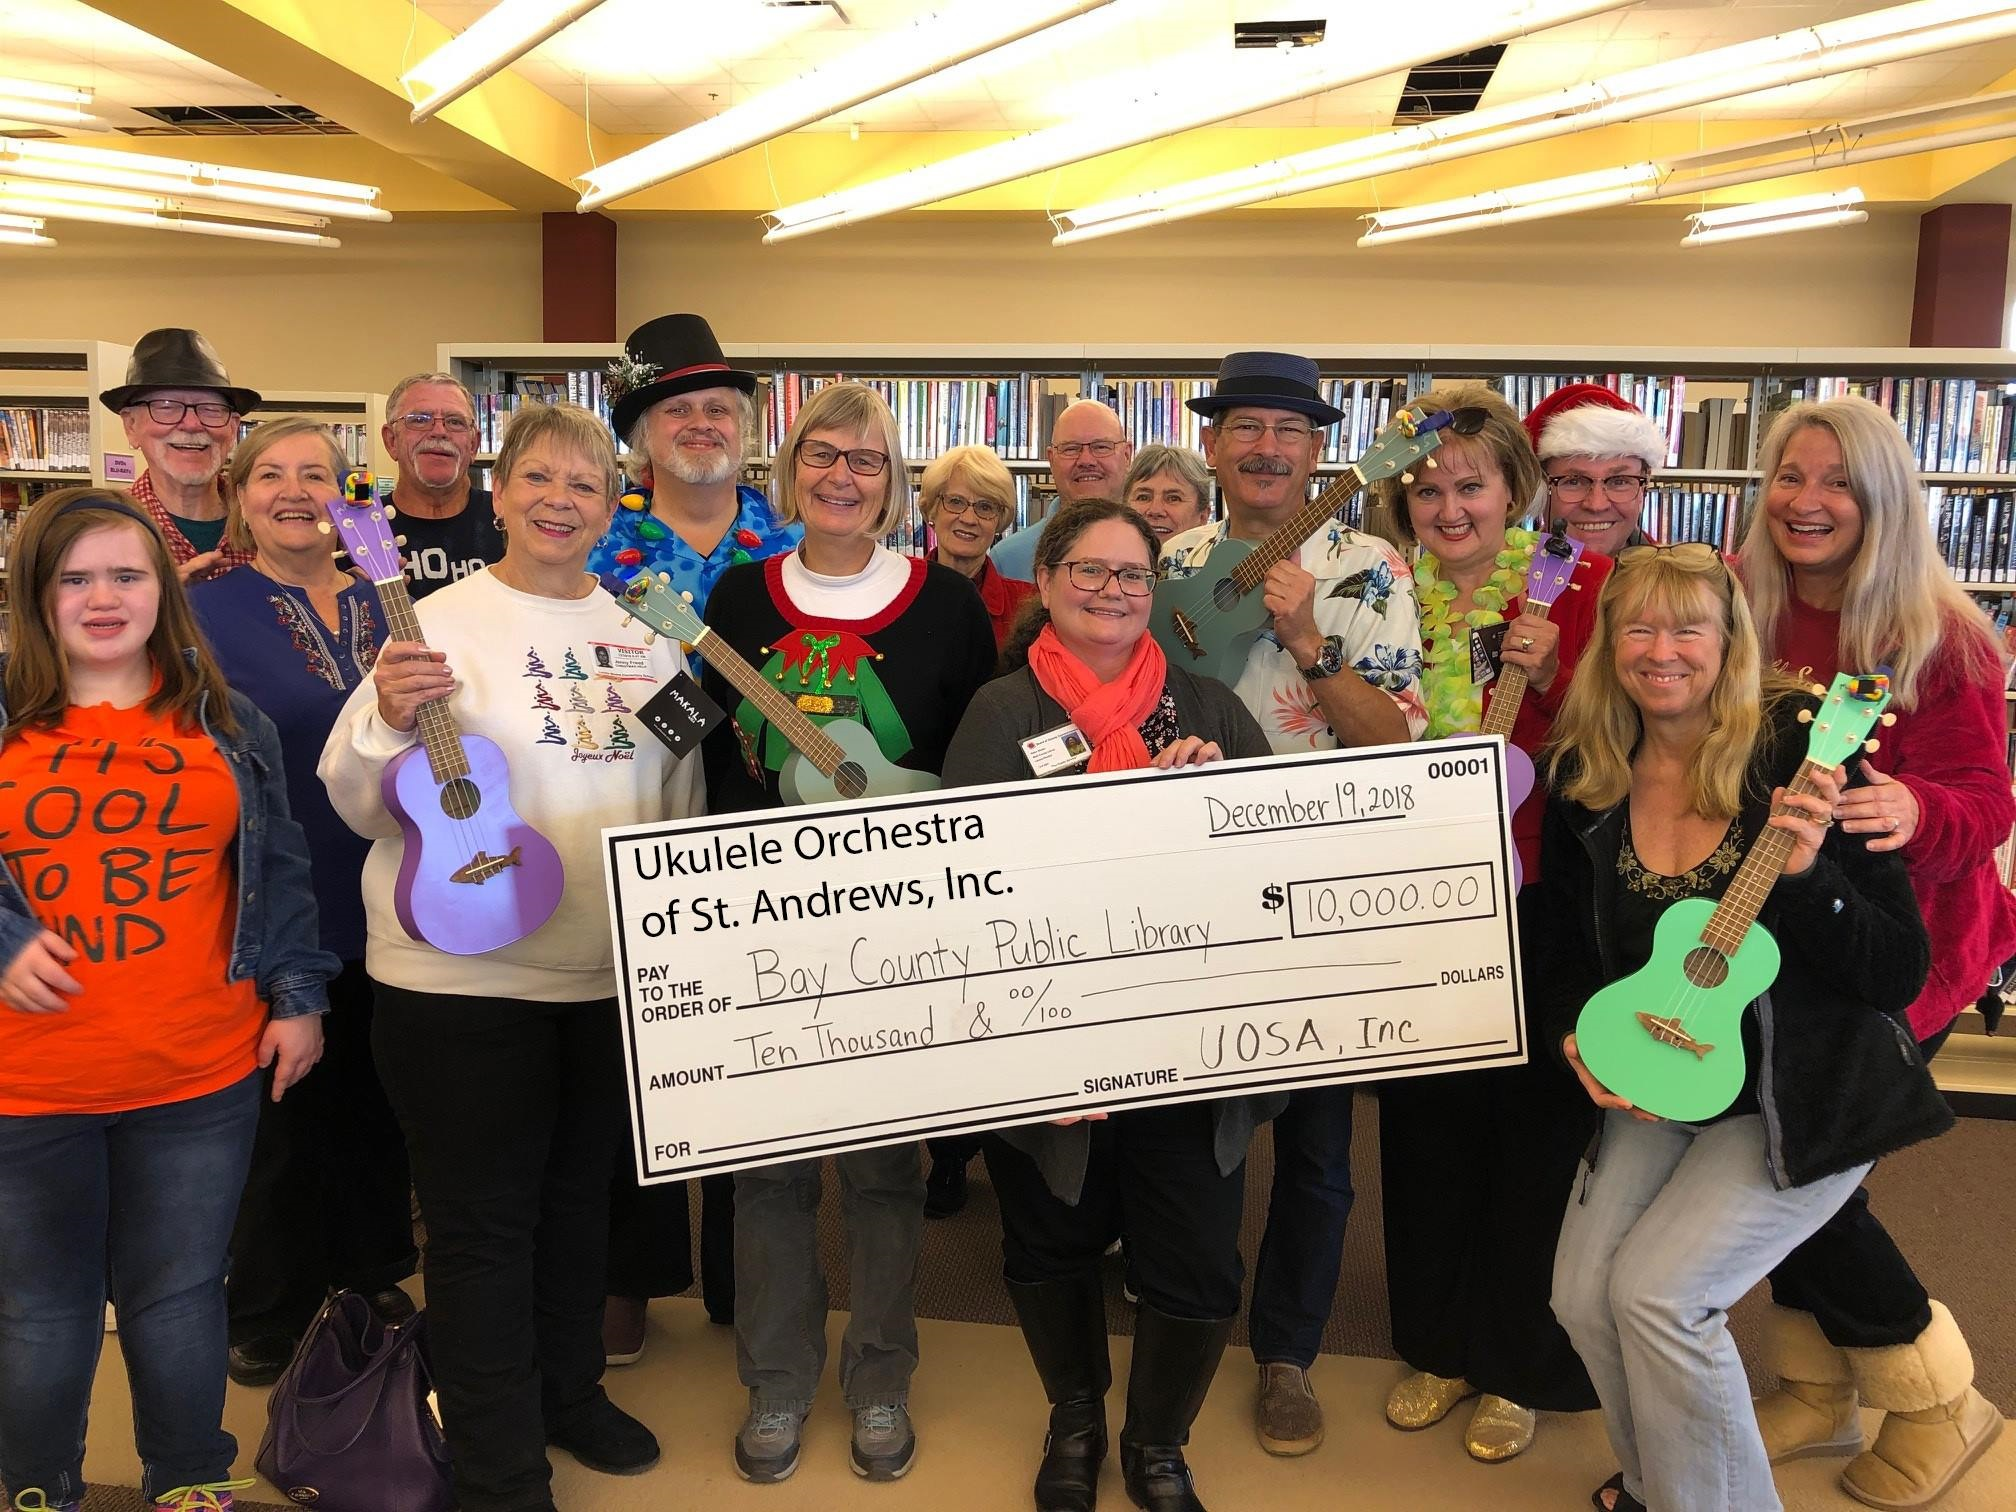 Ukulele Orchestra Check to the Library